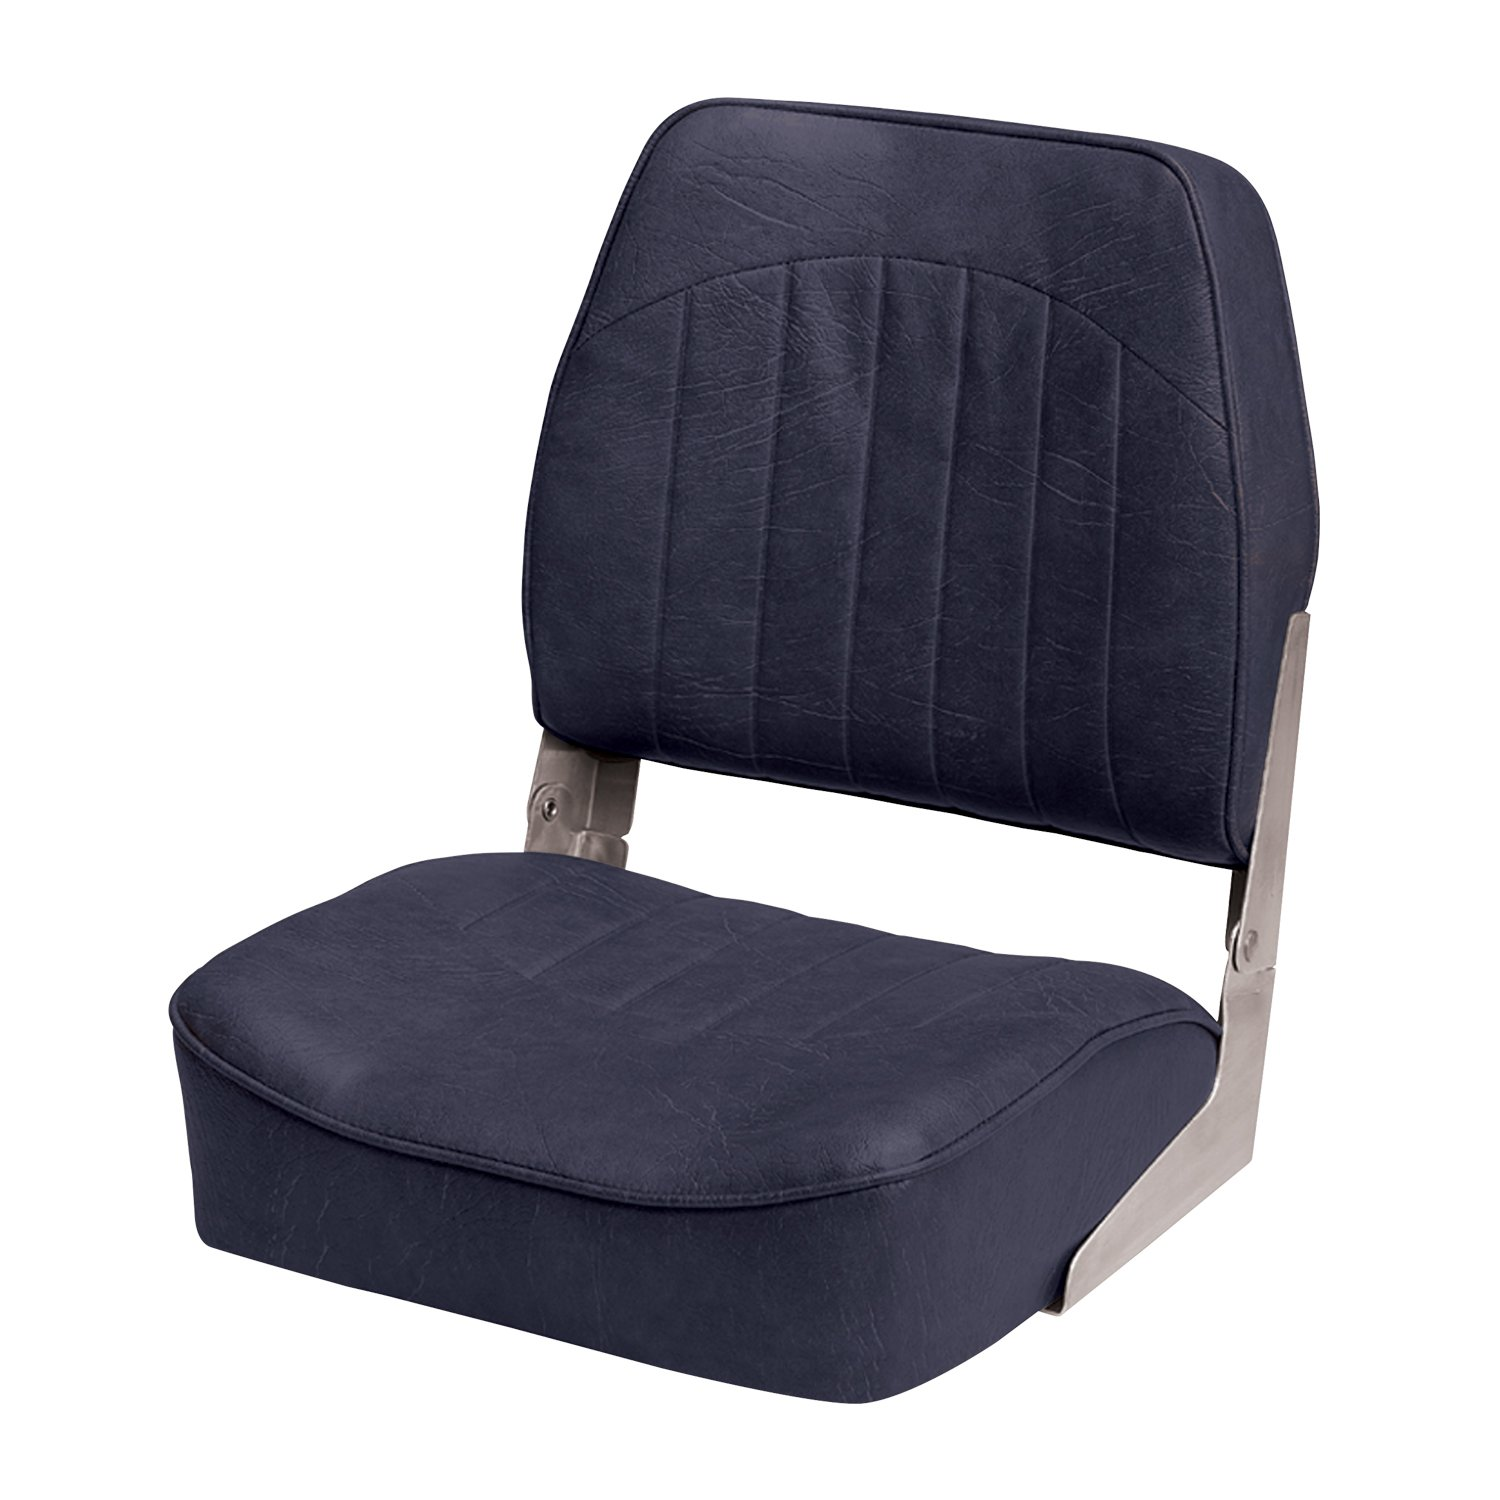 Wise 8WD734PLS-711 Low Back Boat Seat, Navy by Wise (Image #1)